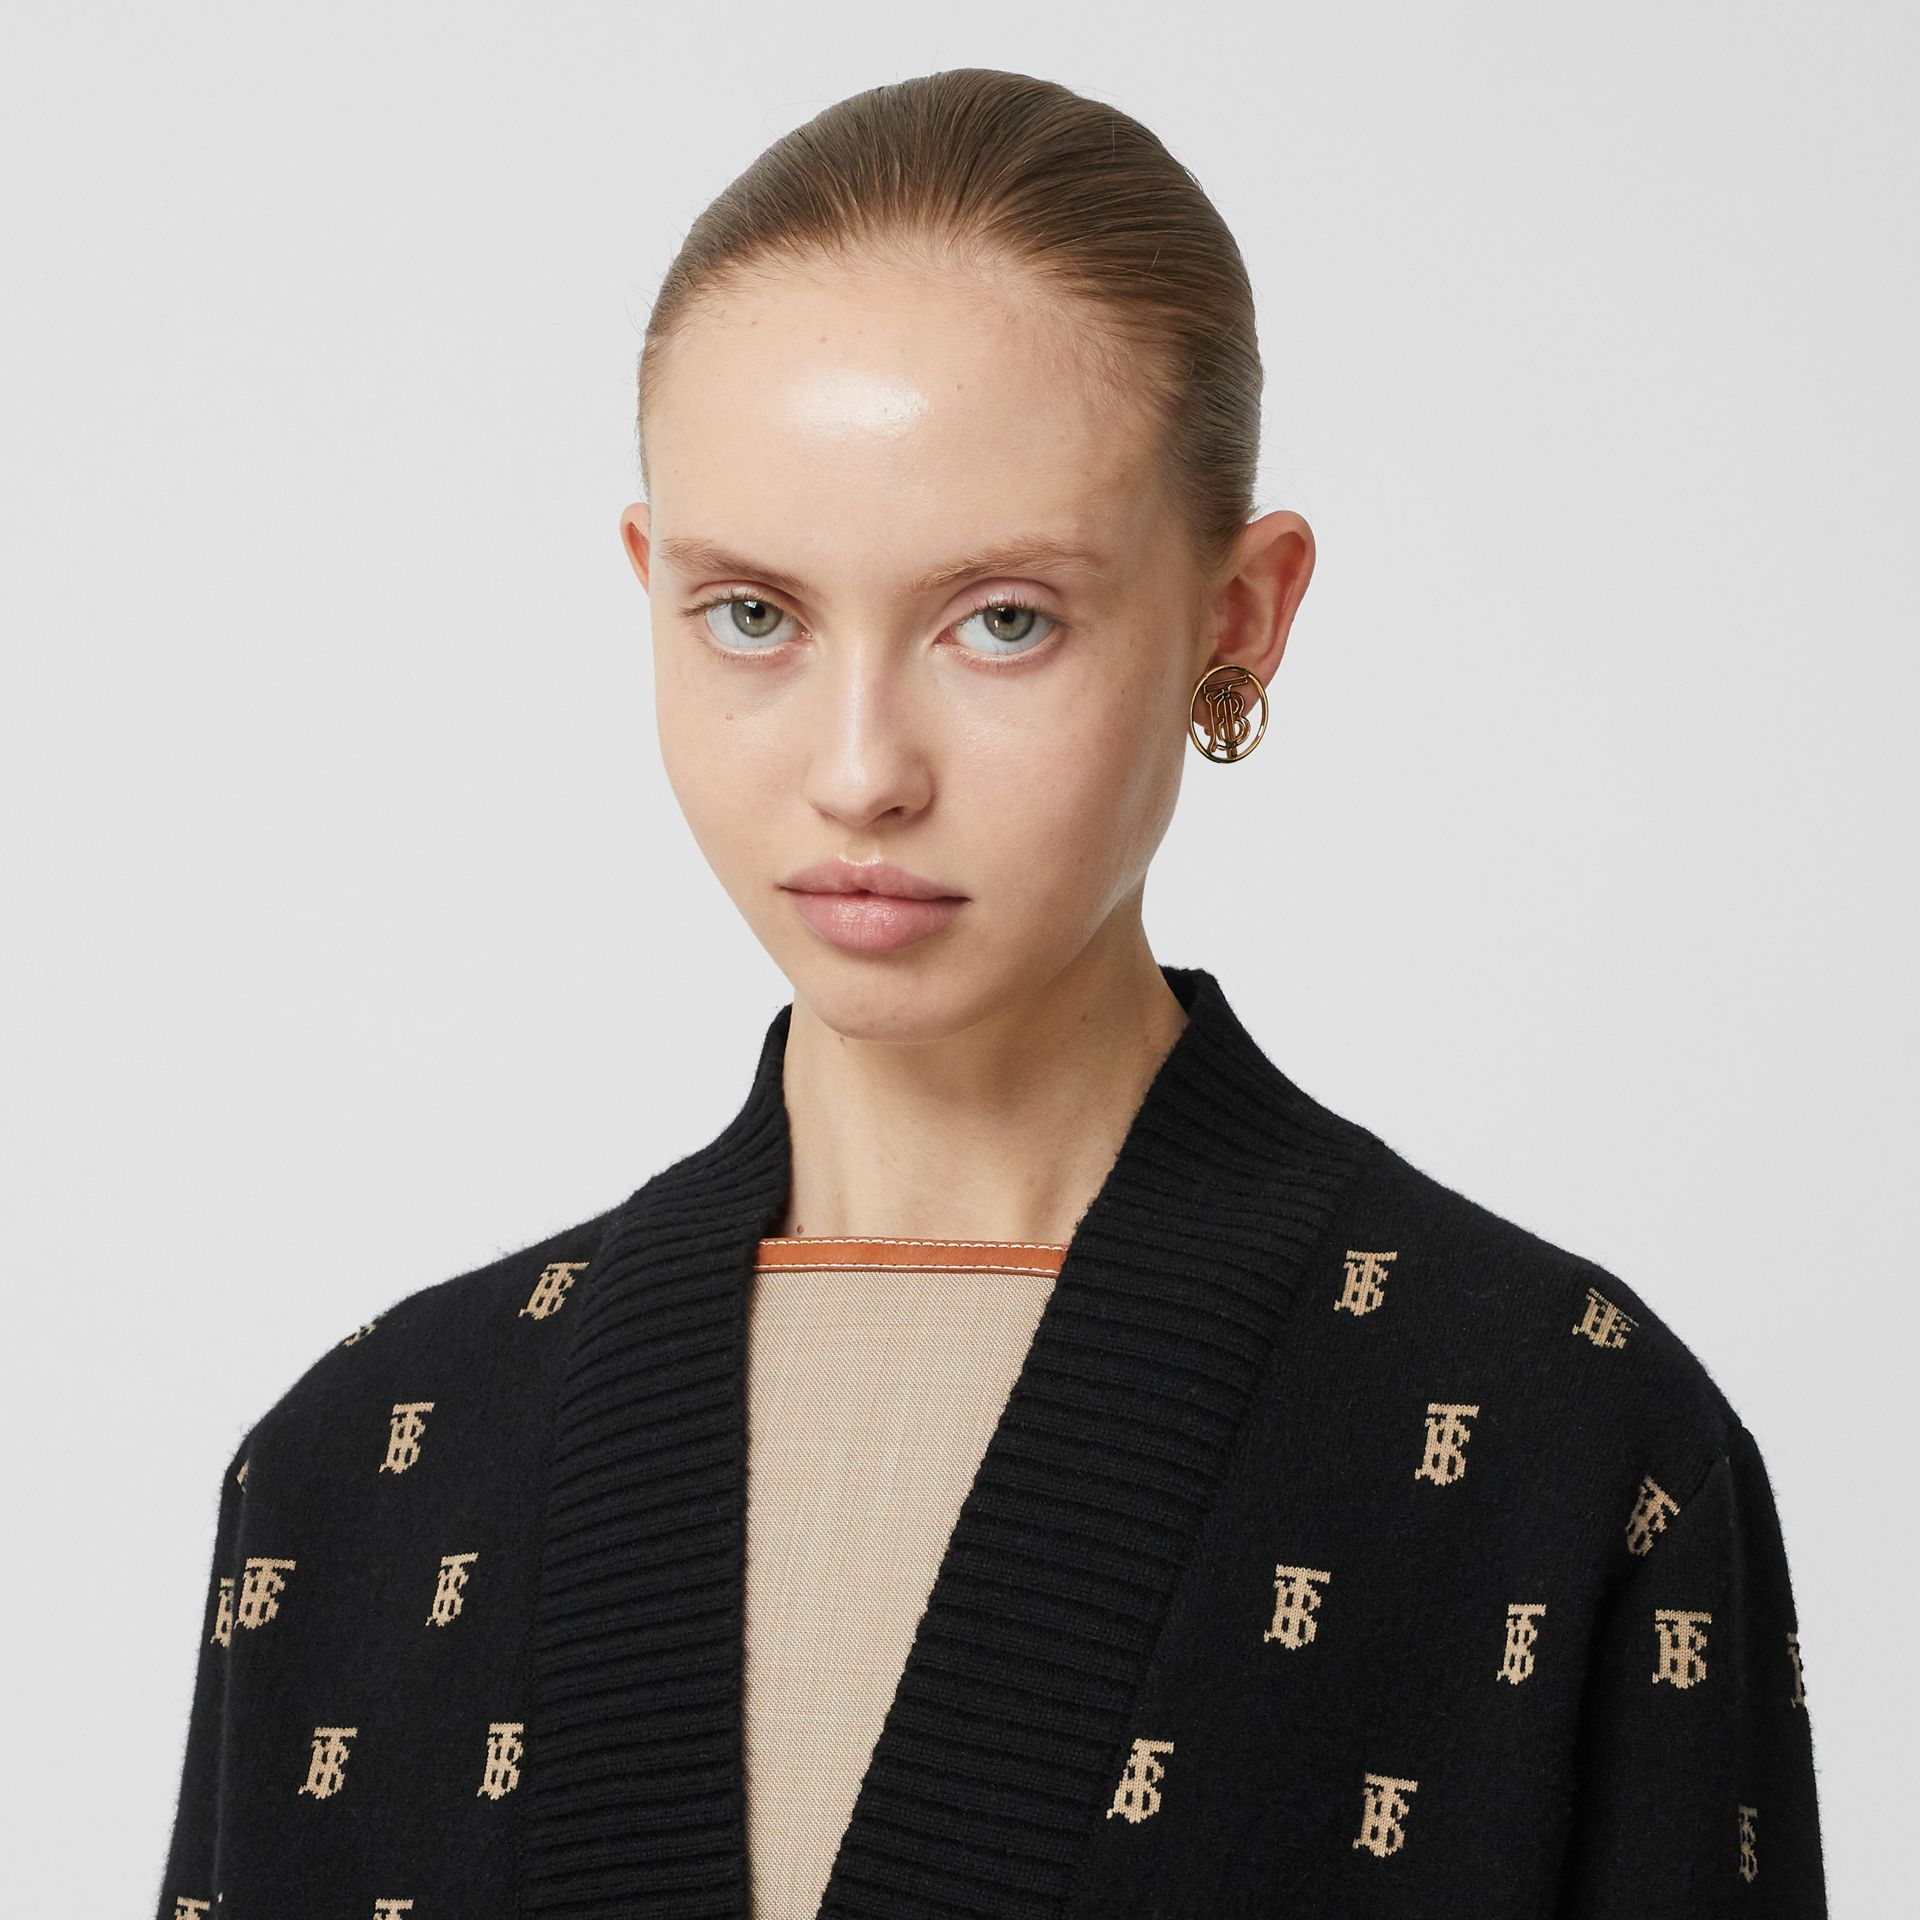 Monogram Wool Cashmere Blend Oversized Cardigan in Black - Women | Burberry - gallery image 1